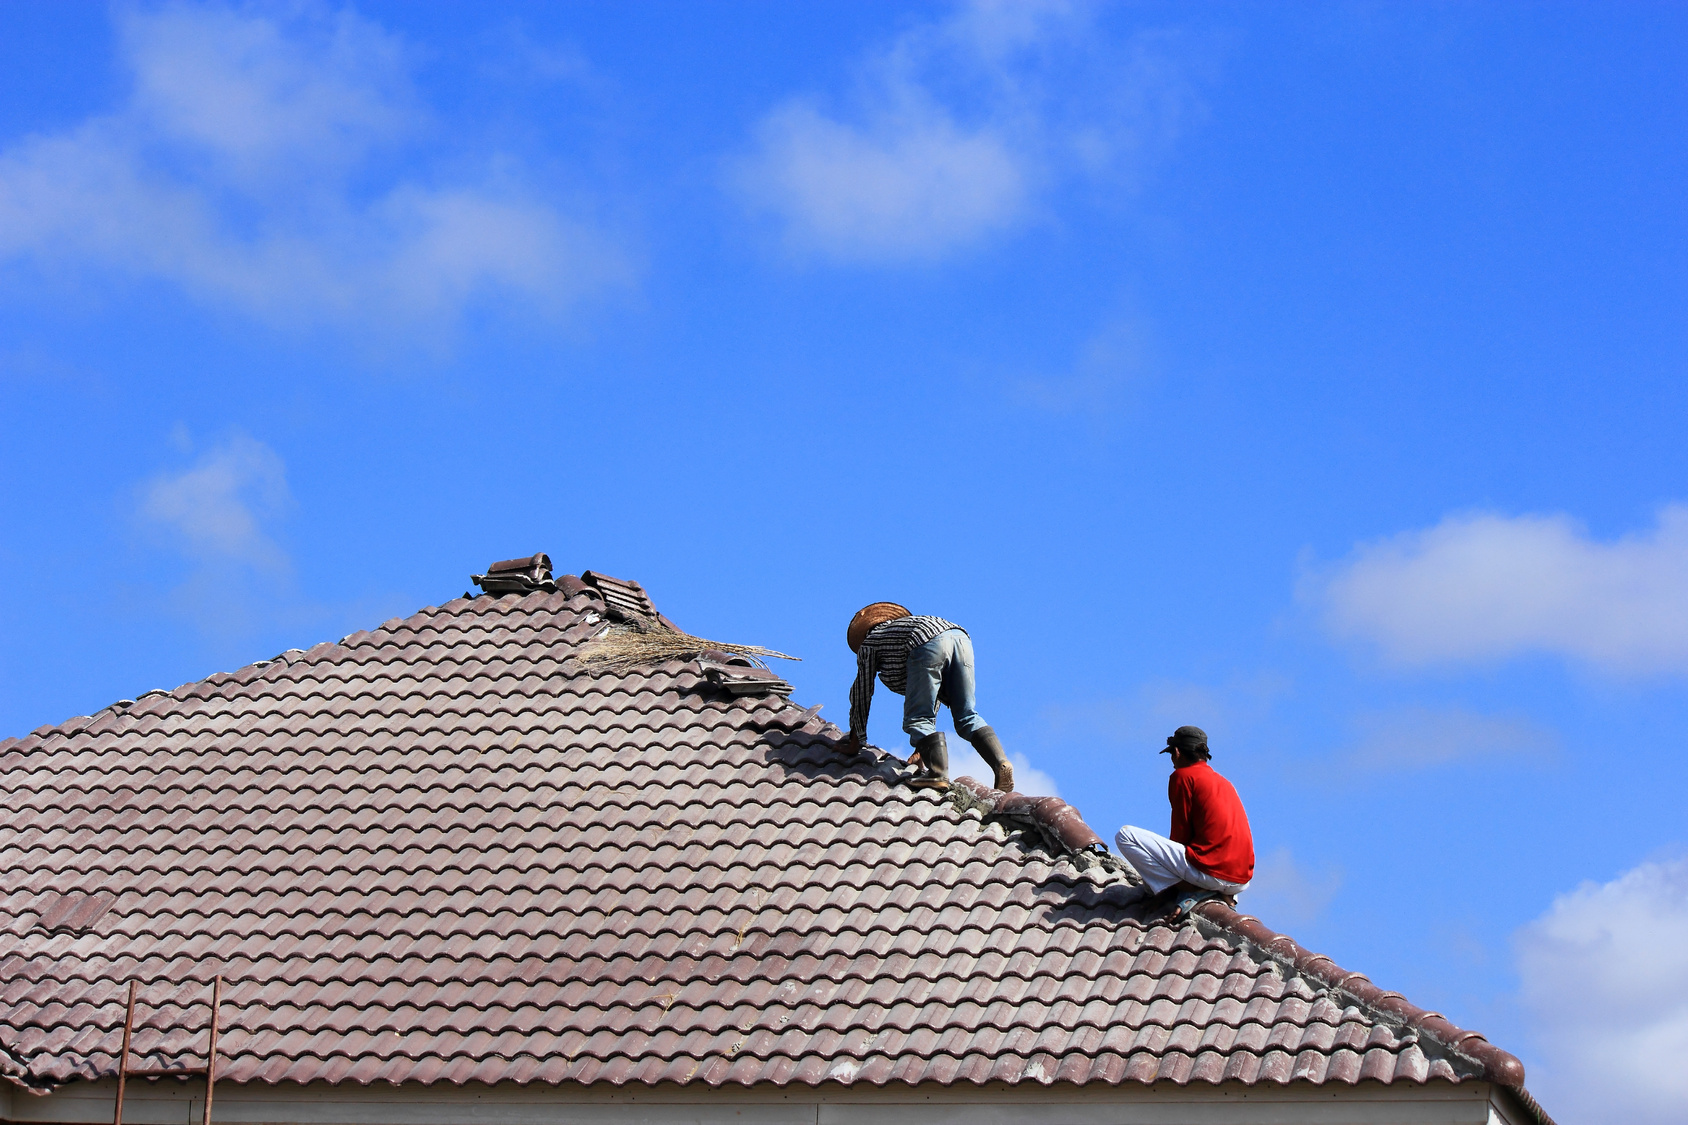 Sbr Roofingpros And Cons Of Concrete Title Roofing Sbr